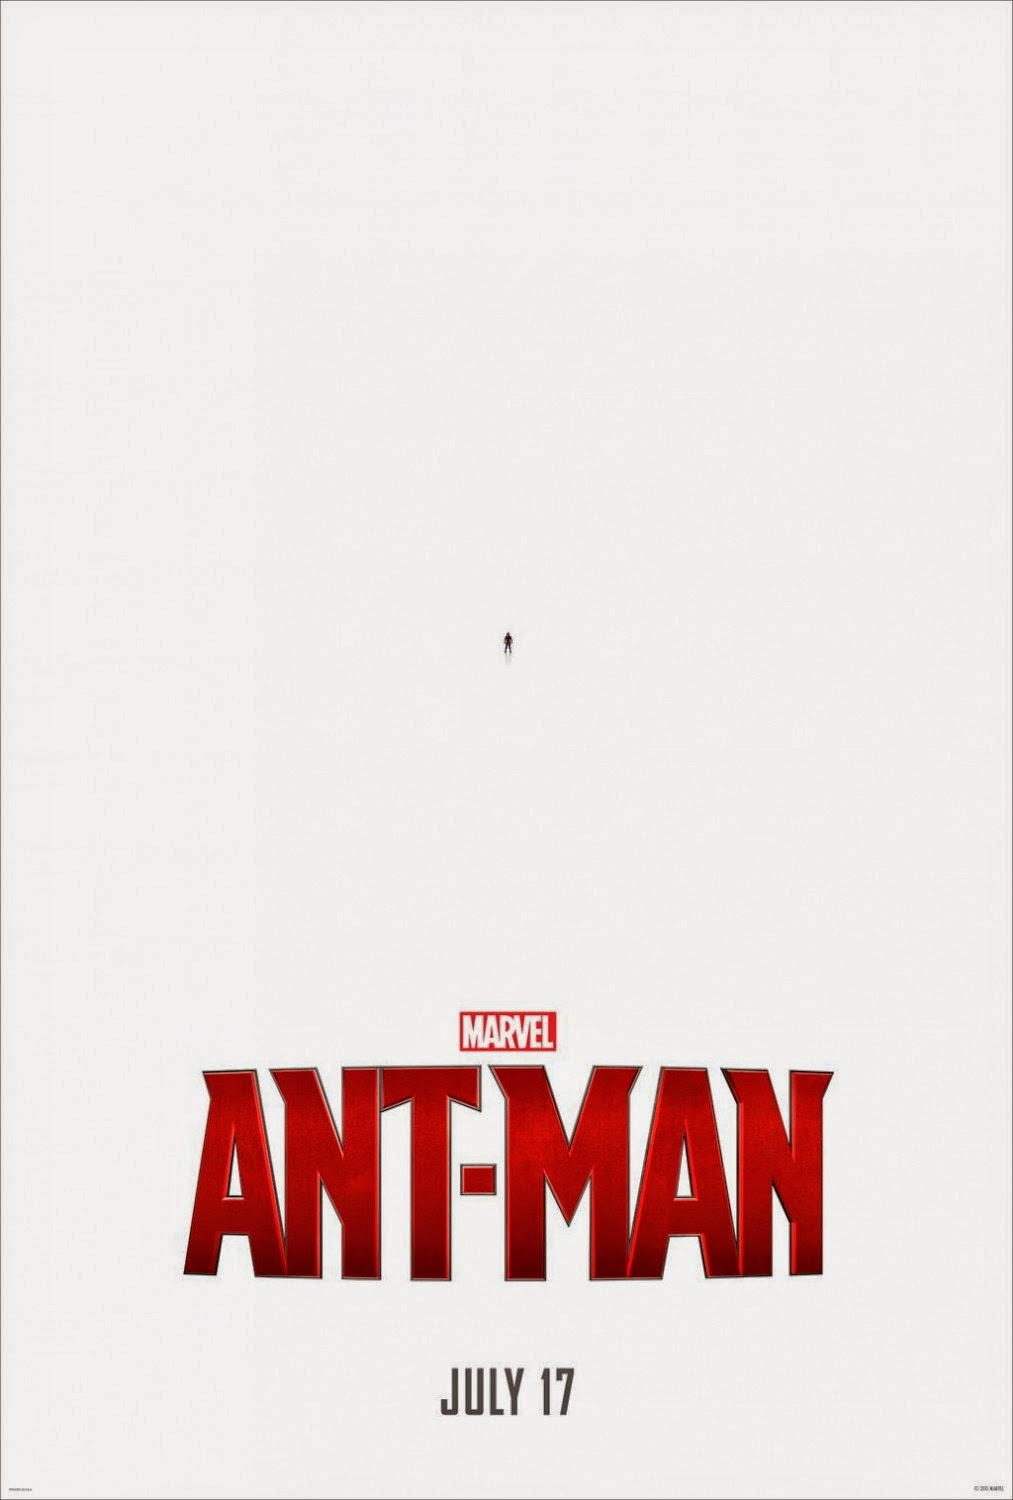 Marvel's Ant-Man First Theatrical One Sheet Teaser Movie Poster